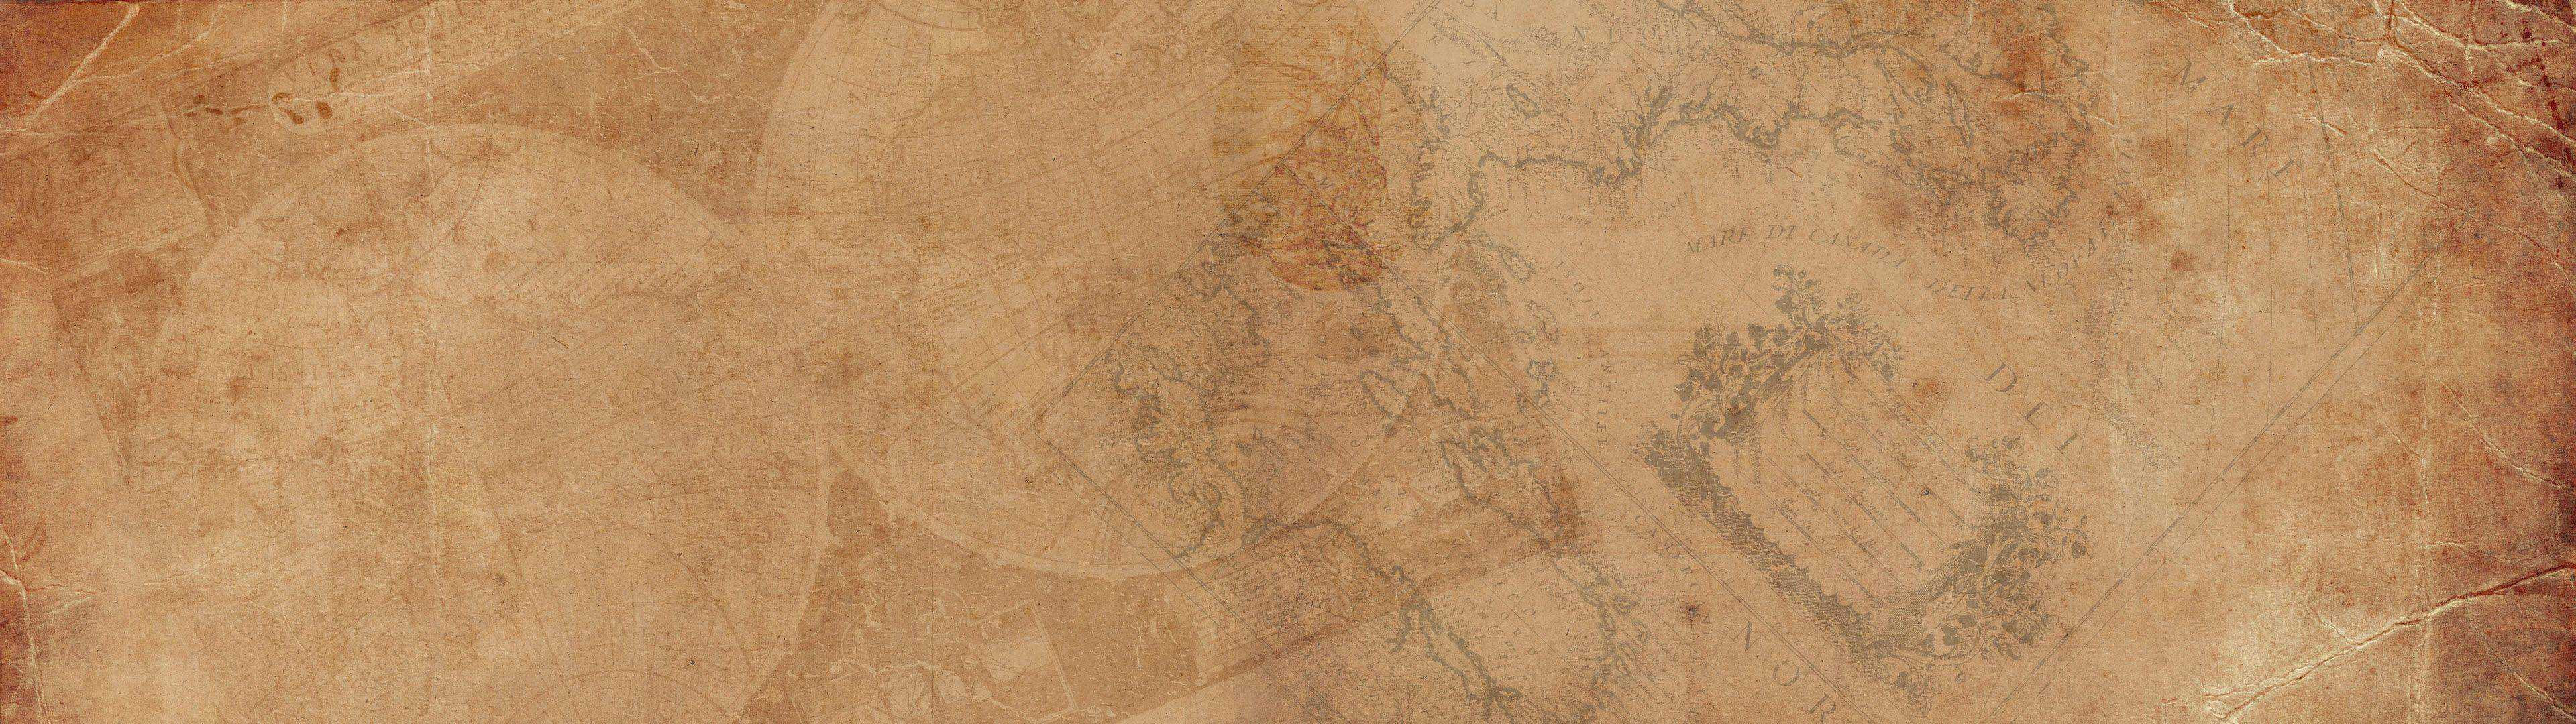 World Map Dual Monitor Wallpaper Pixelz